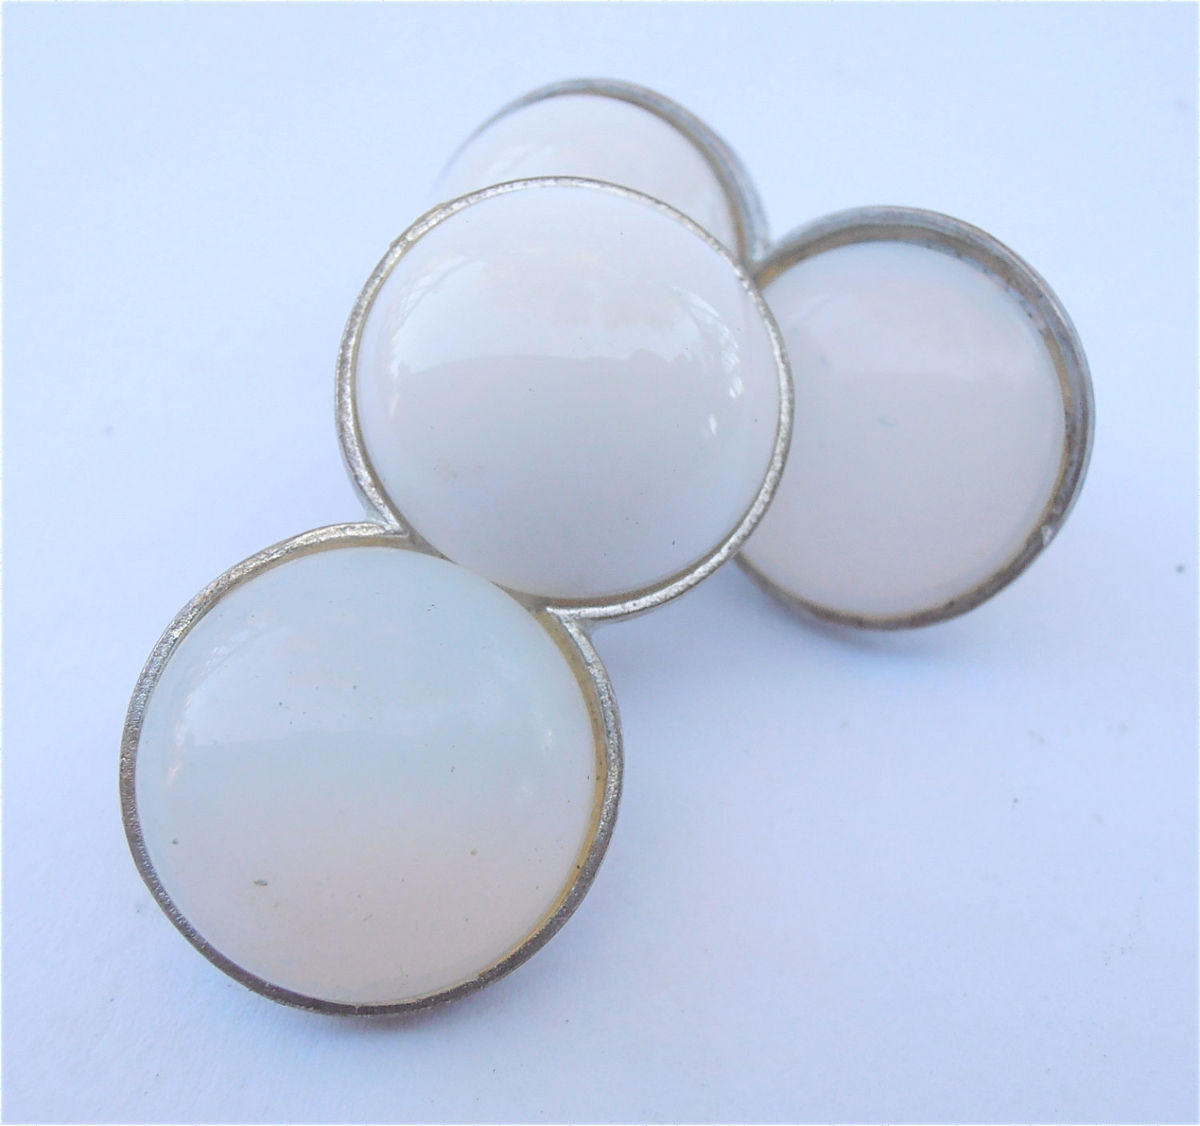 Vintage White Cabochon Go Go Earrings Translucent Opalite Glass Clip Ons Retro Double Two Round Silver Tone Art Deco Mod Style Collezione - product images  of